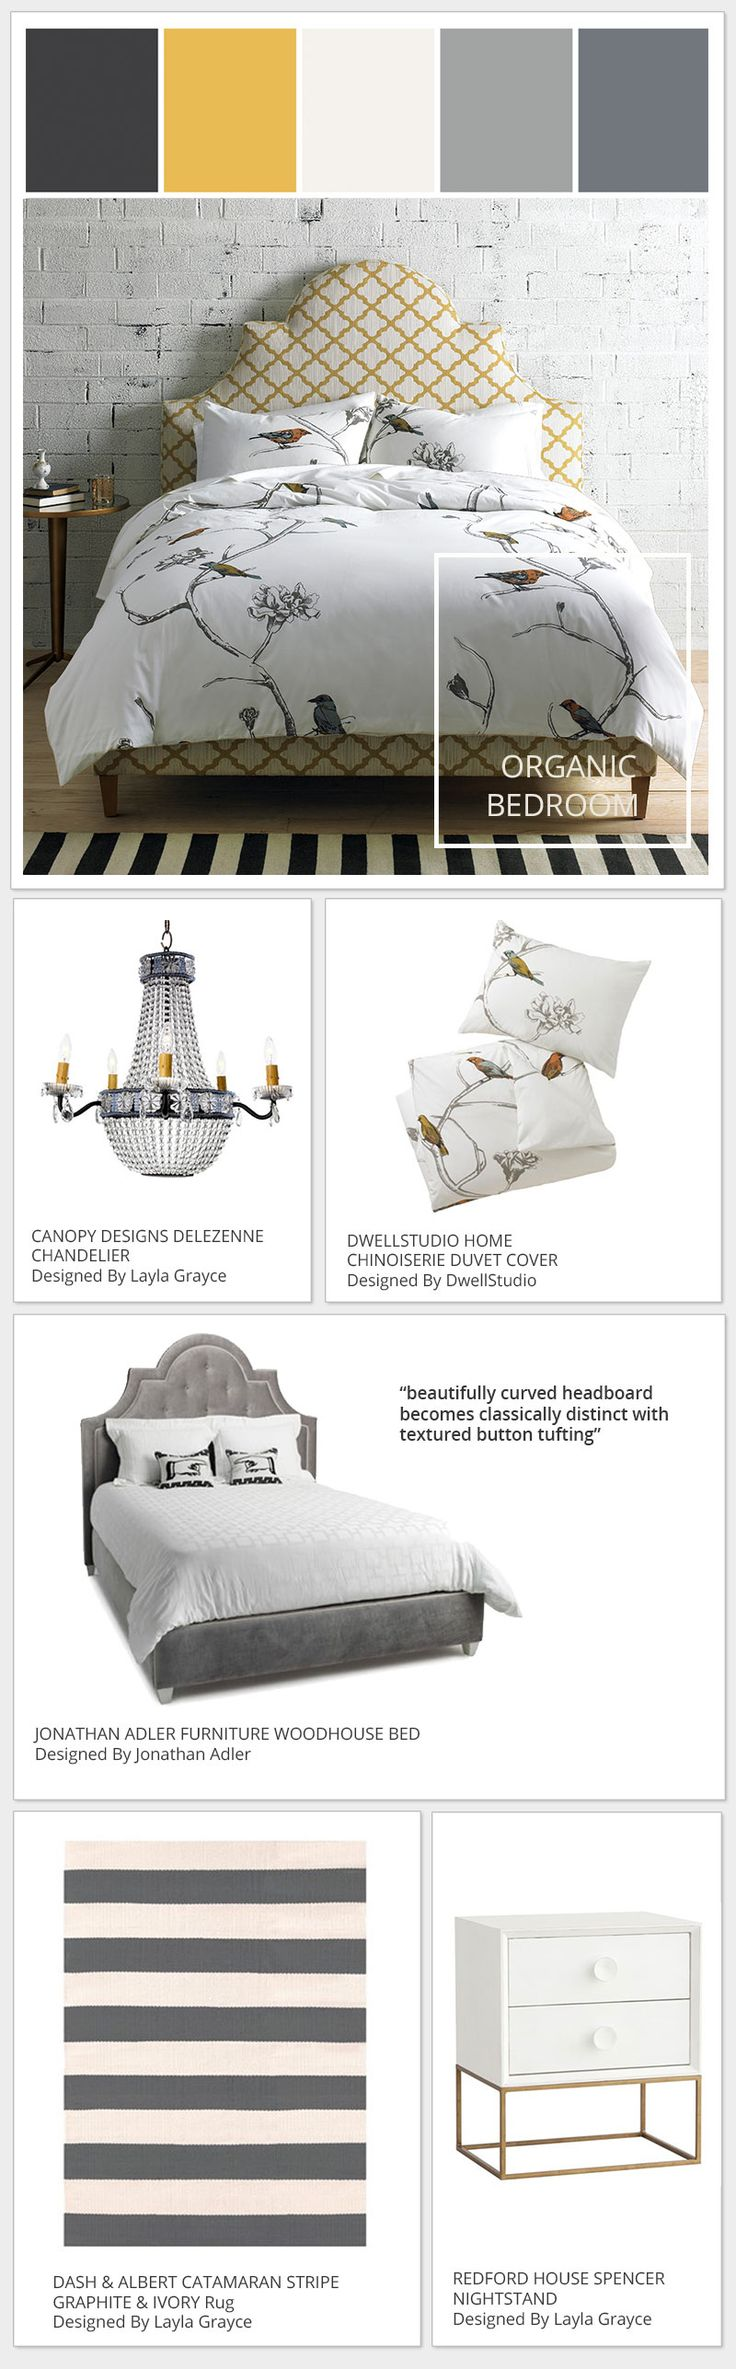 Organic Bedroom Furniture 17 Best Images About Dwellstudio Color Inspiration Stylyze On